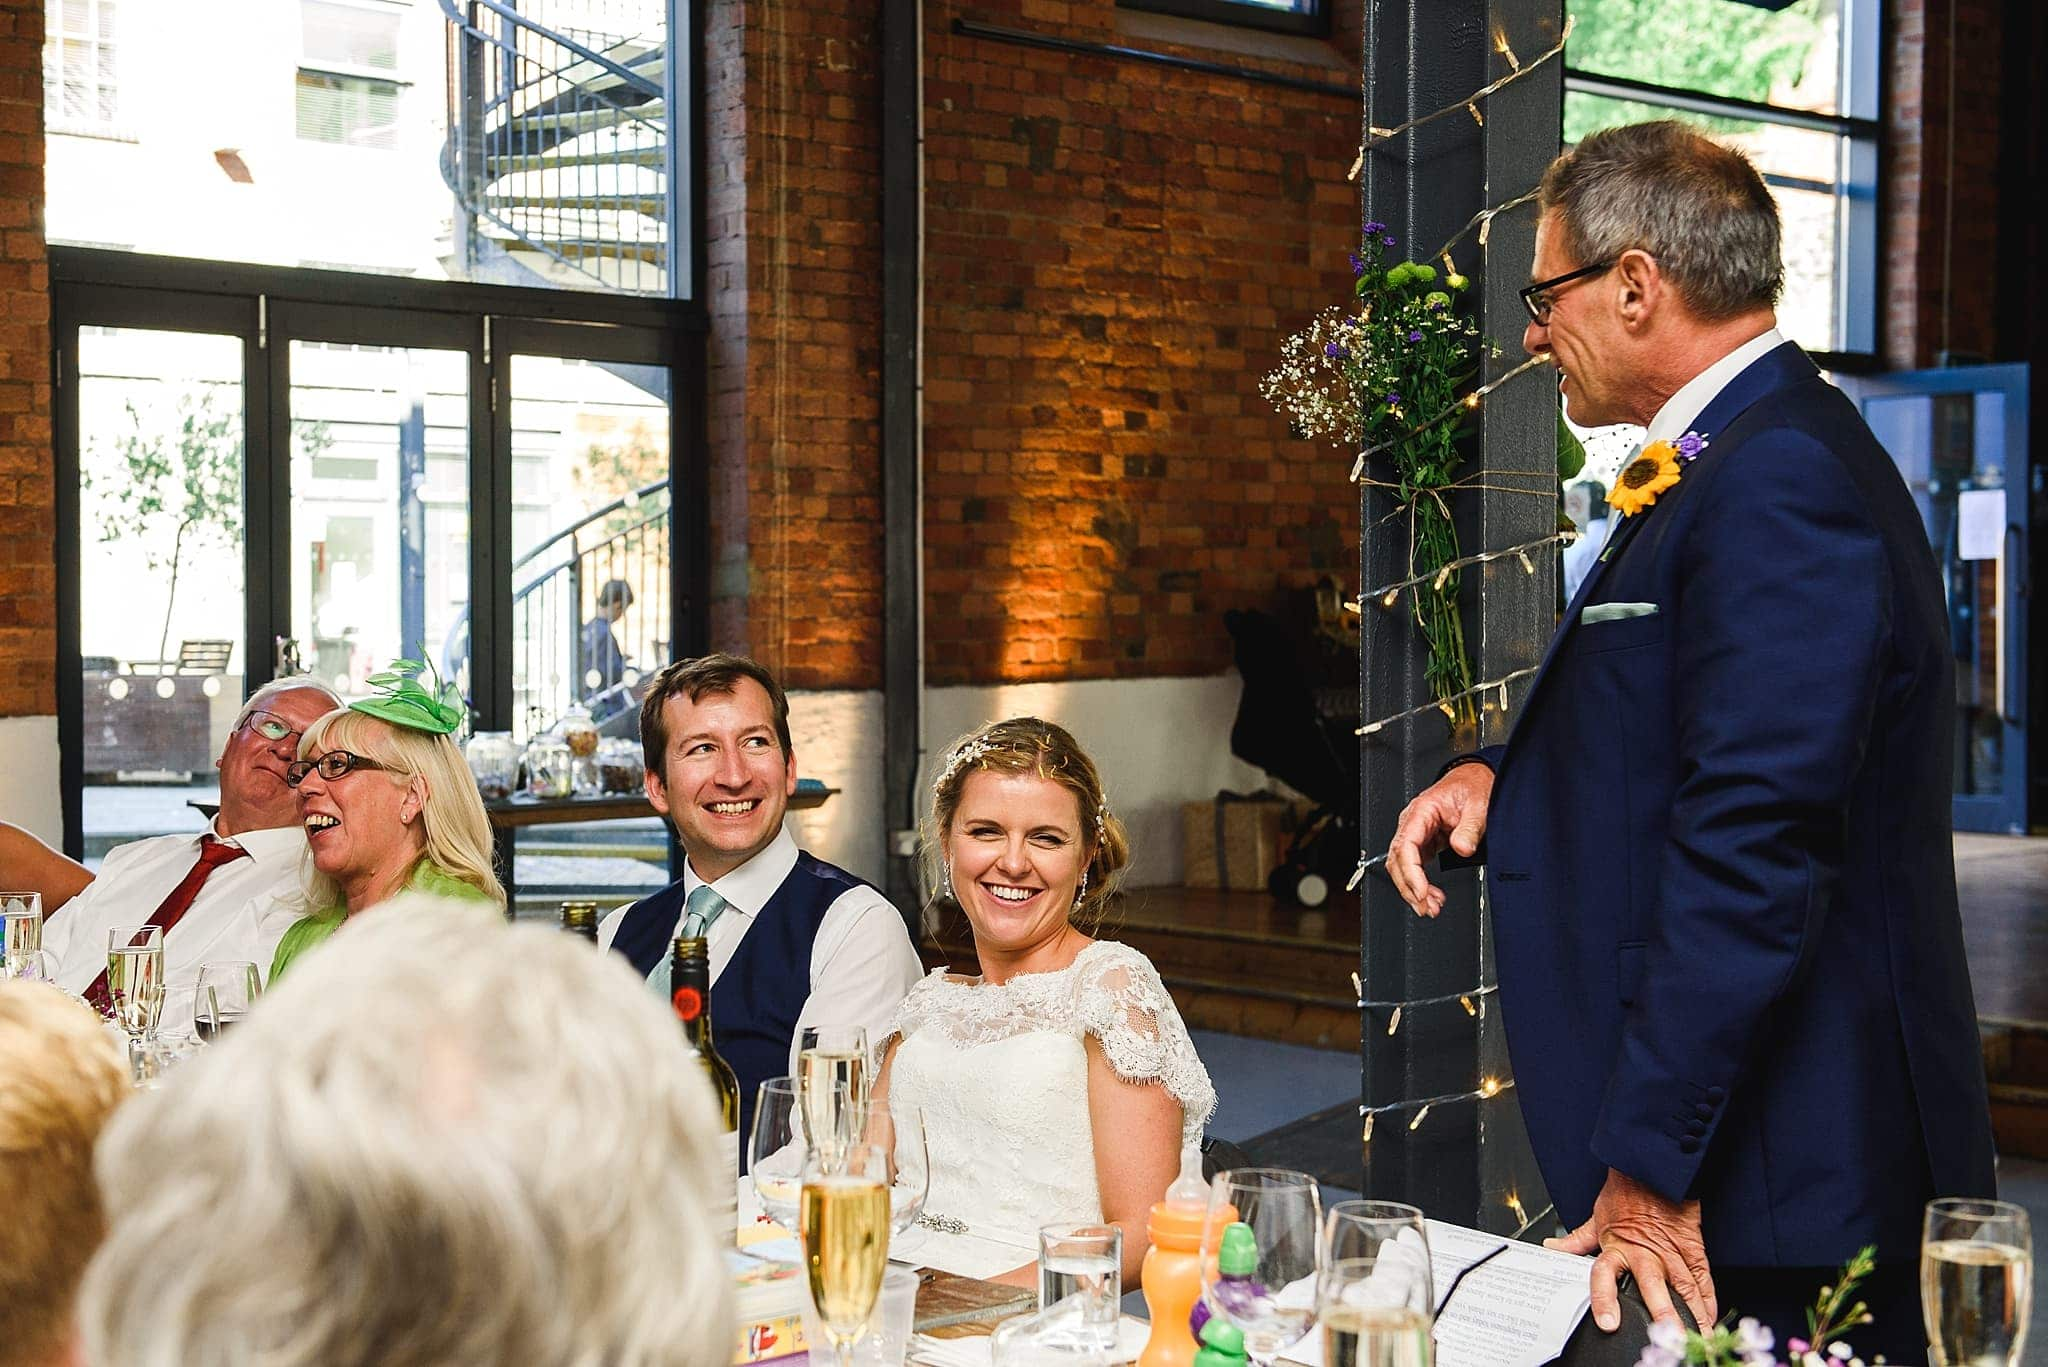 Father of the bride reads out his speech to his daughter and new husband on their wedding day at the paintwork's